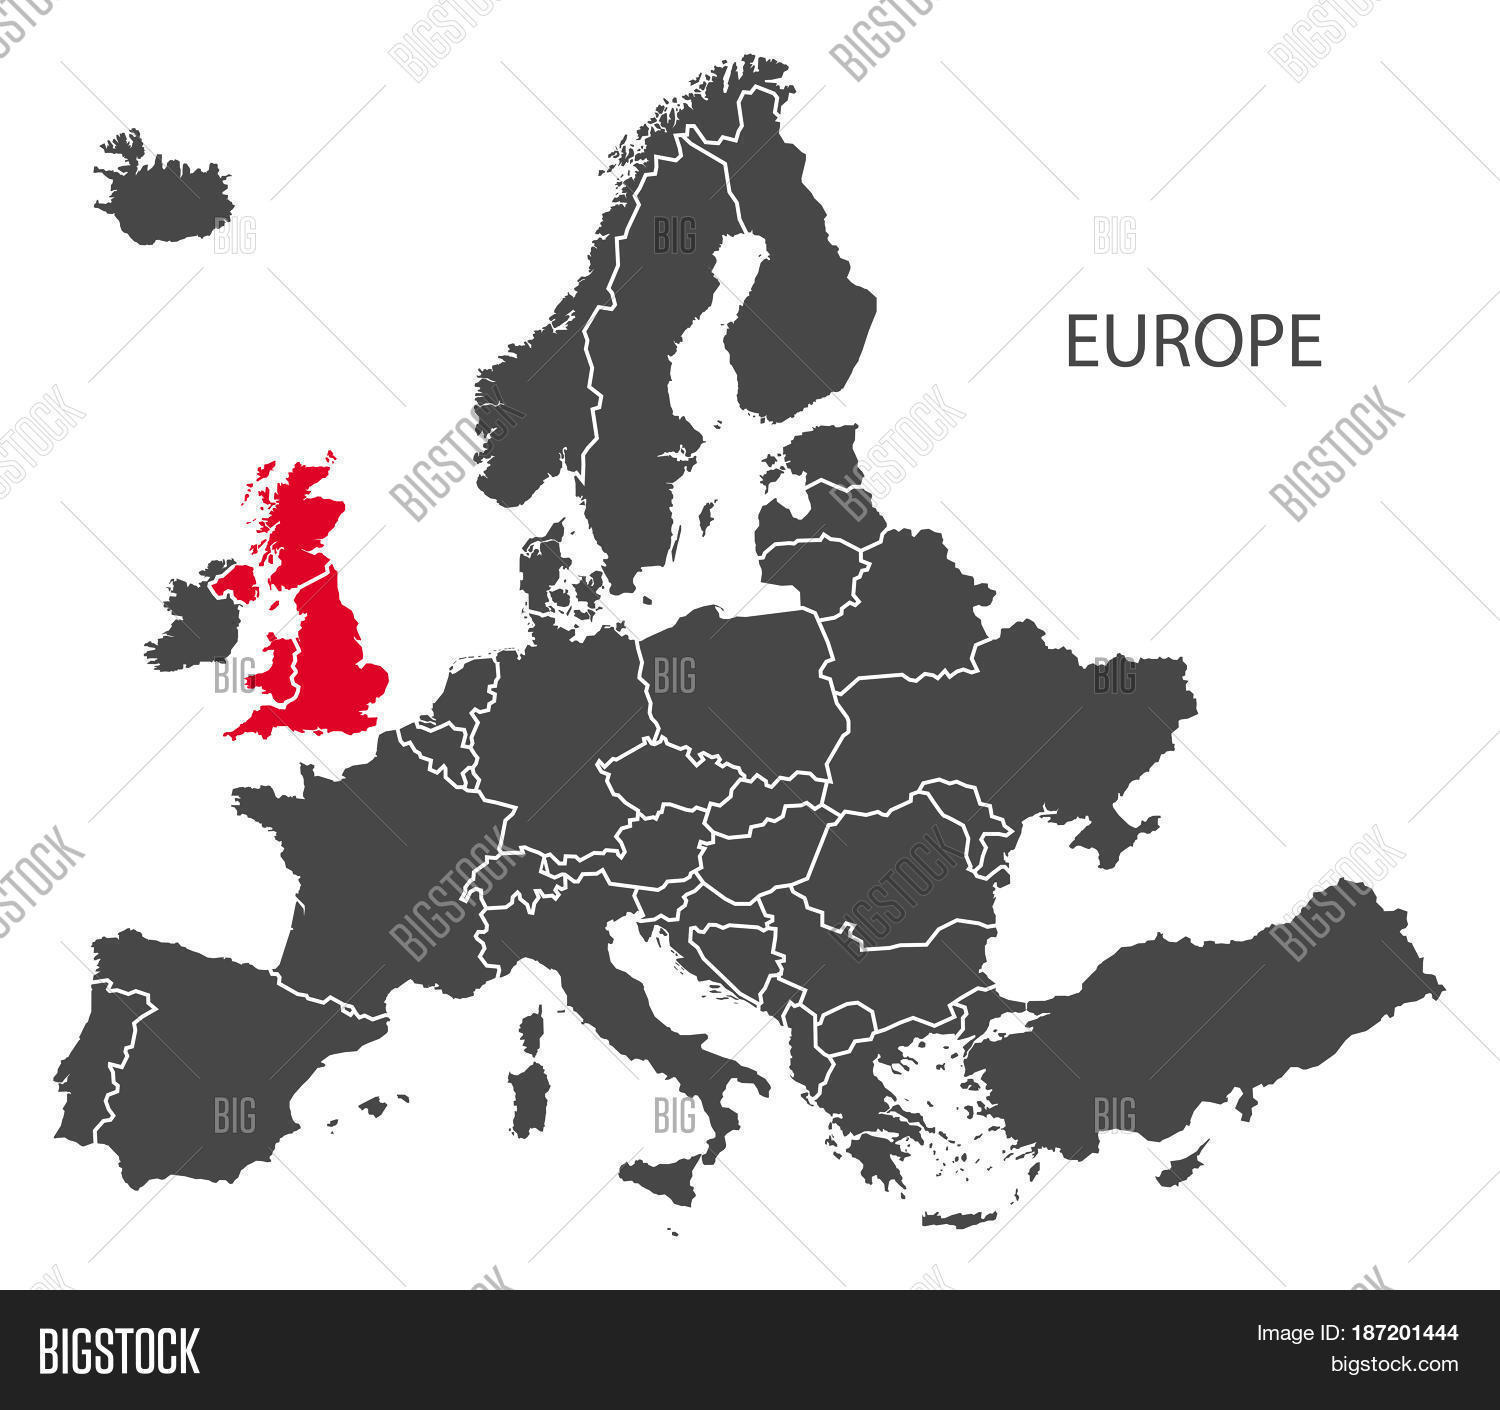 Imagen y foto europe countries map dark grey bigstock europe with countries map dark grey including highlighted britain in red brexit gumiabroncs Images